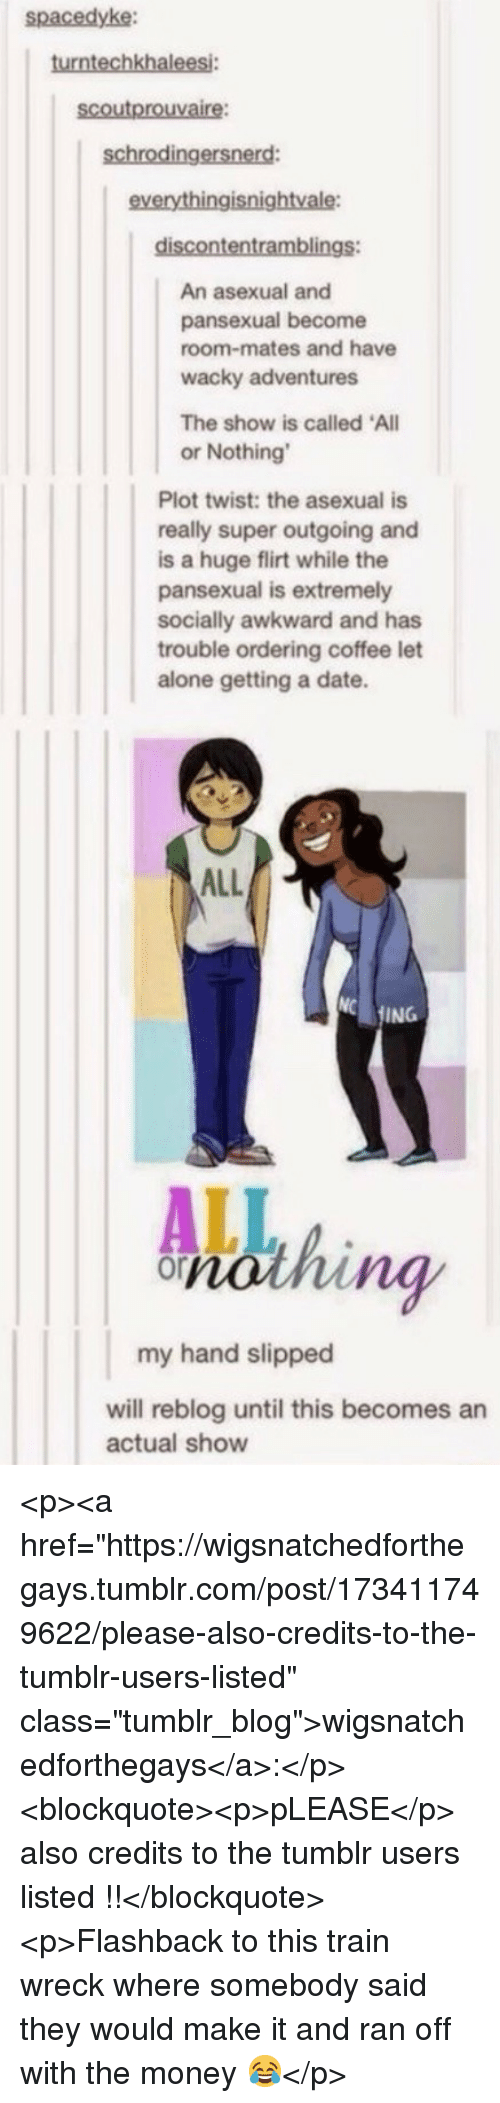 "Being Alone, Money, and Tumblr: spacedyke:  turntechkhalees  scoutprouvaire:  schrodingersnerd  everythingisnightvale  An asexual and  pansexual become  room-mates and have  wacky adventures  The show is called All  or Nothing  Plot twist: the asexual is  really super outgoing and  is a huge flirt while the  pansexual is extremely  socially awkward and has  trouble ordering coffee let  alone getting a date.  ALL  ING  ng  my hand slipped  will reblog until this becomes an  actual show <p><a href=""https://wigsnatchedforthegays.tumblr.com/post/173411749622/please-also-credits-to-the-tumblr-users-listed"" class=""tumblr_blog"">wigsnatchedforthegays</a>:</p>  <blockquote><p>pLEASE</p>  also credits to the tumblr users listed !!</blockquote>  <p>Flashback to this train wreck where somebody said they would make it and ran off with the money 😂</p>"